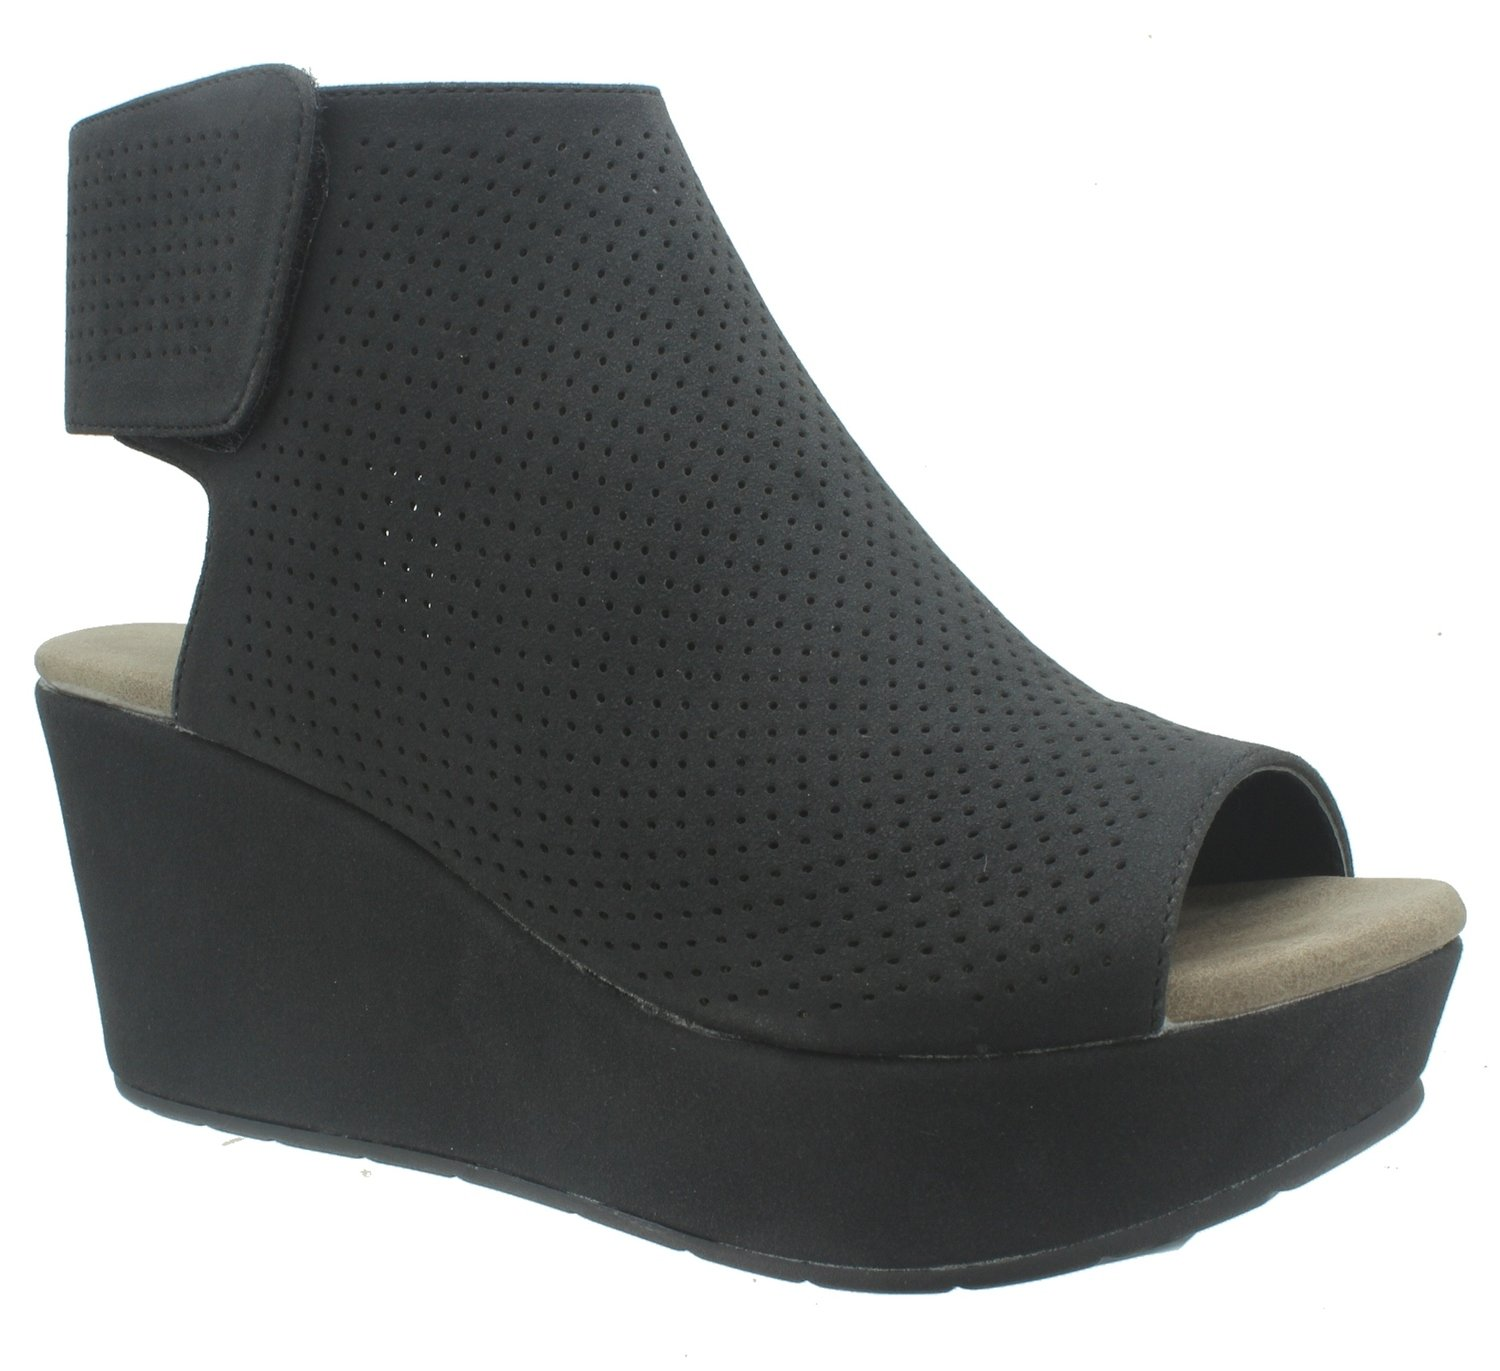 Pierre Dumas Women's Natural-2 Backless Slip-On Chunky Stacked Heel Fashion Mule Bootie,Black,8.5